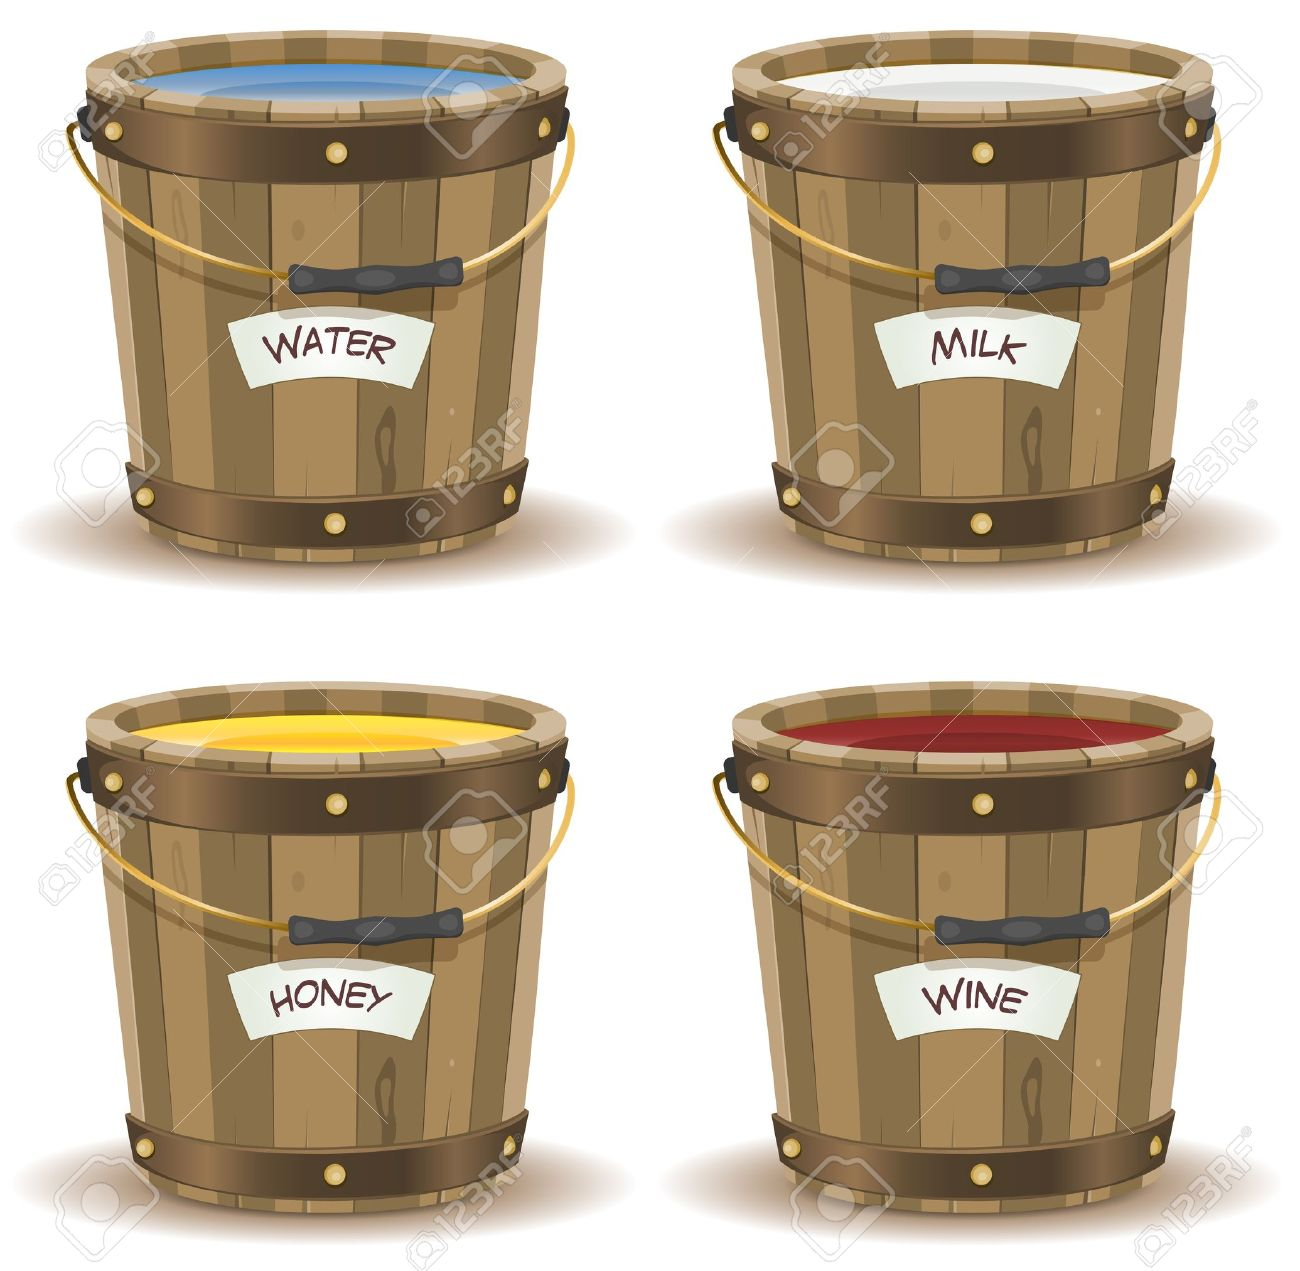 Illustration of a set of cartoon wooden bucket with handle and gold metal strapping, containing various liquid beverage, water, milk,wine, and honey with their respective label banner Stock Vector - 19694894